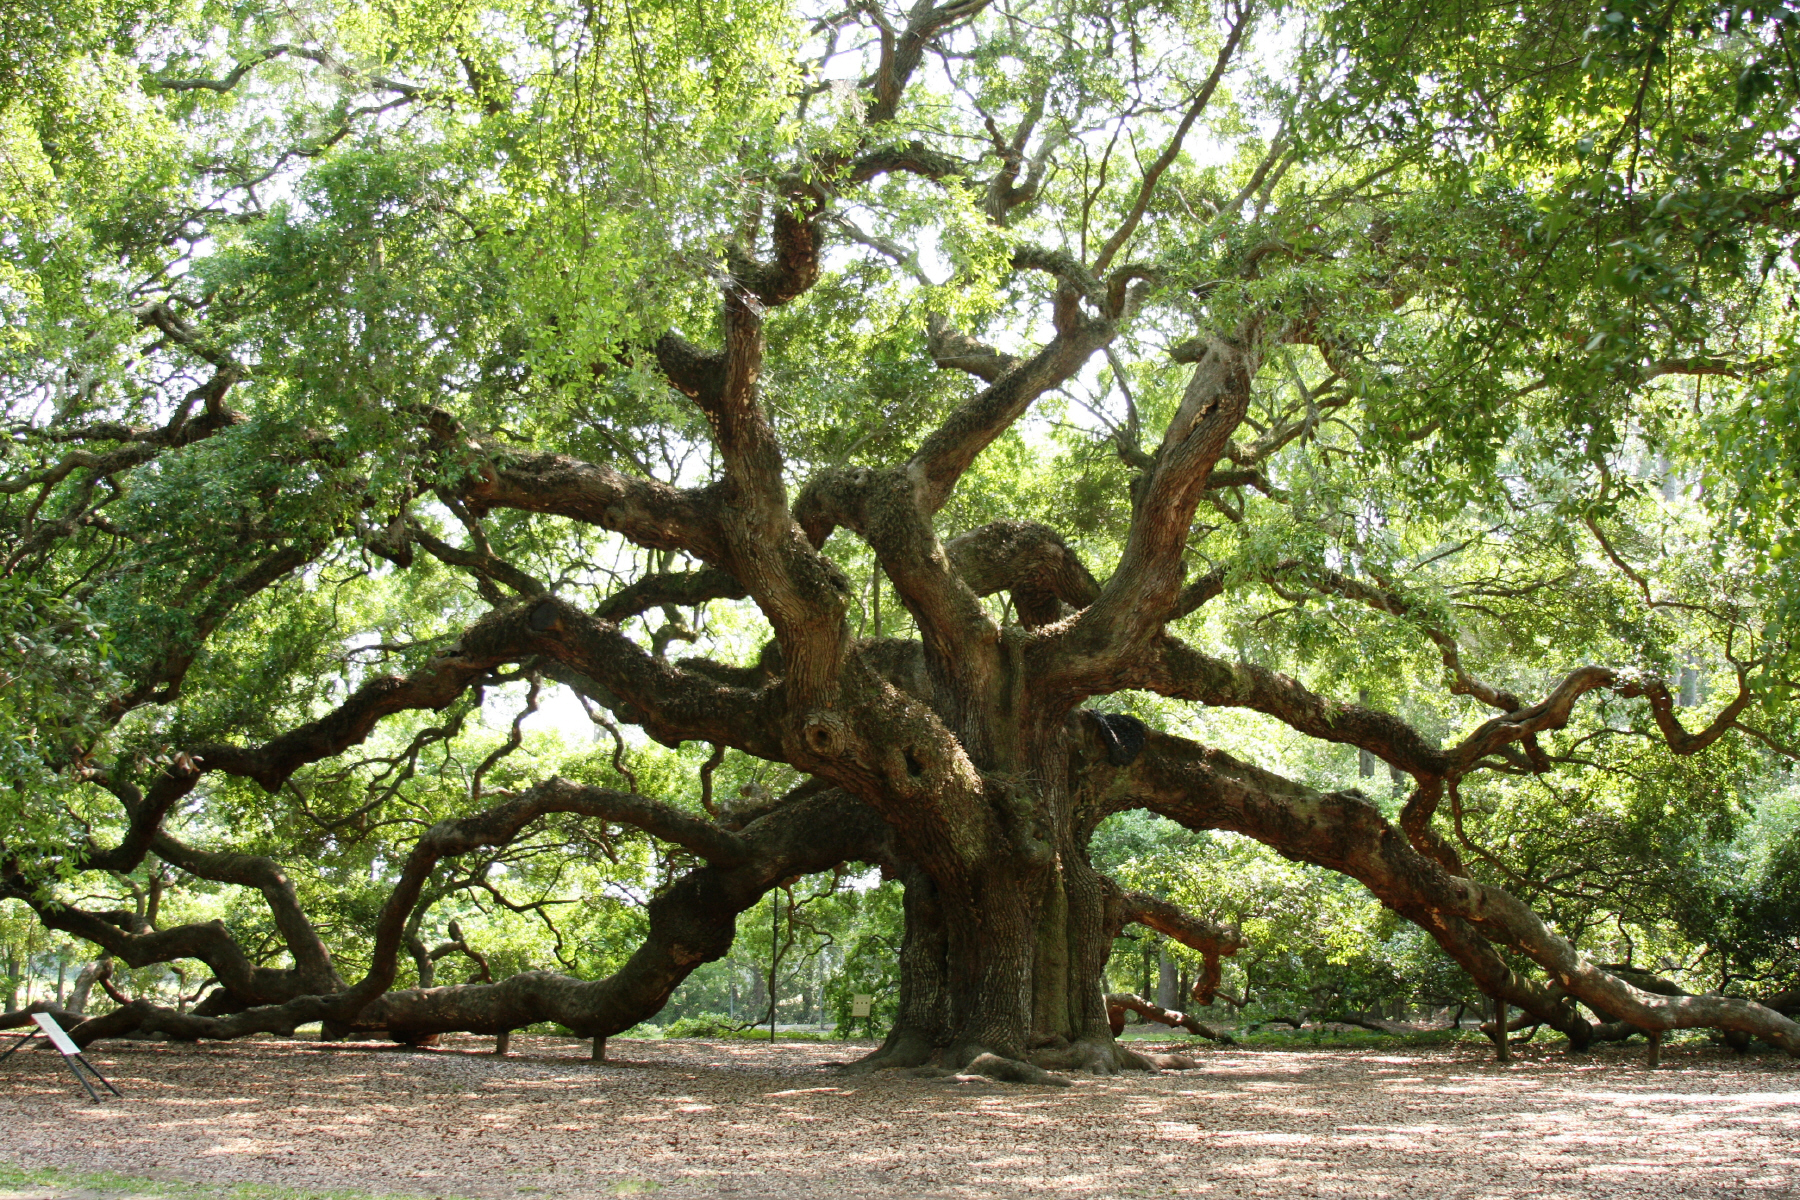 Angel Oak Tree near Charleston, South Carolina